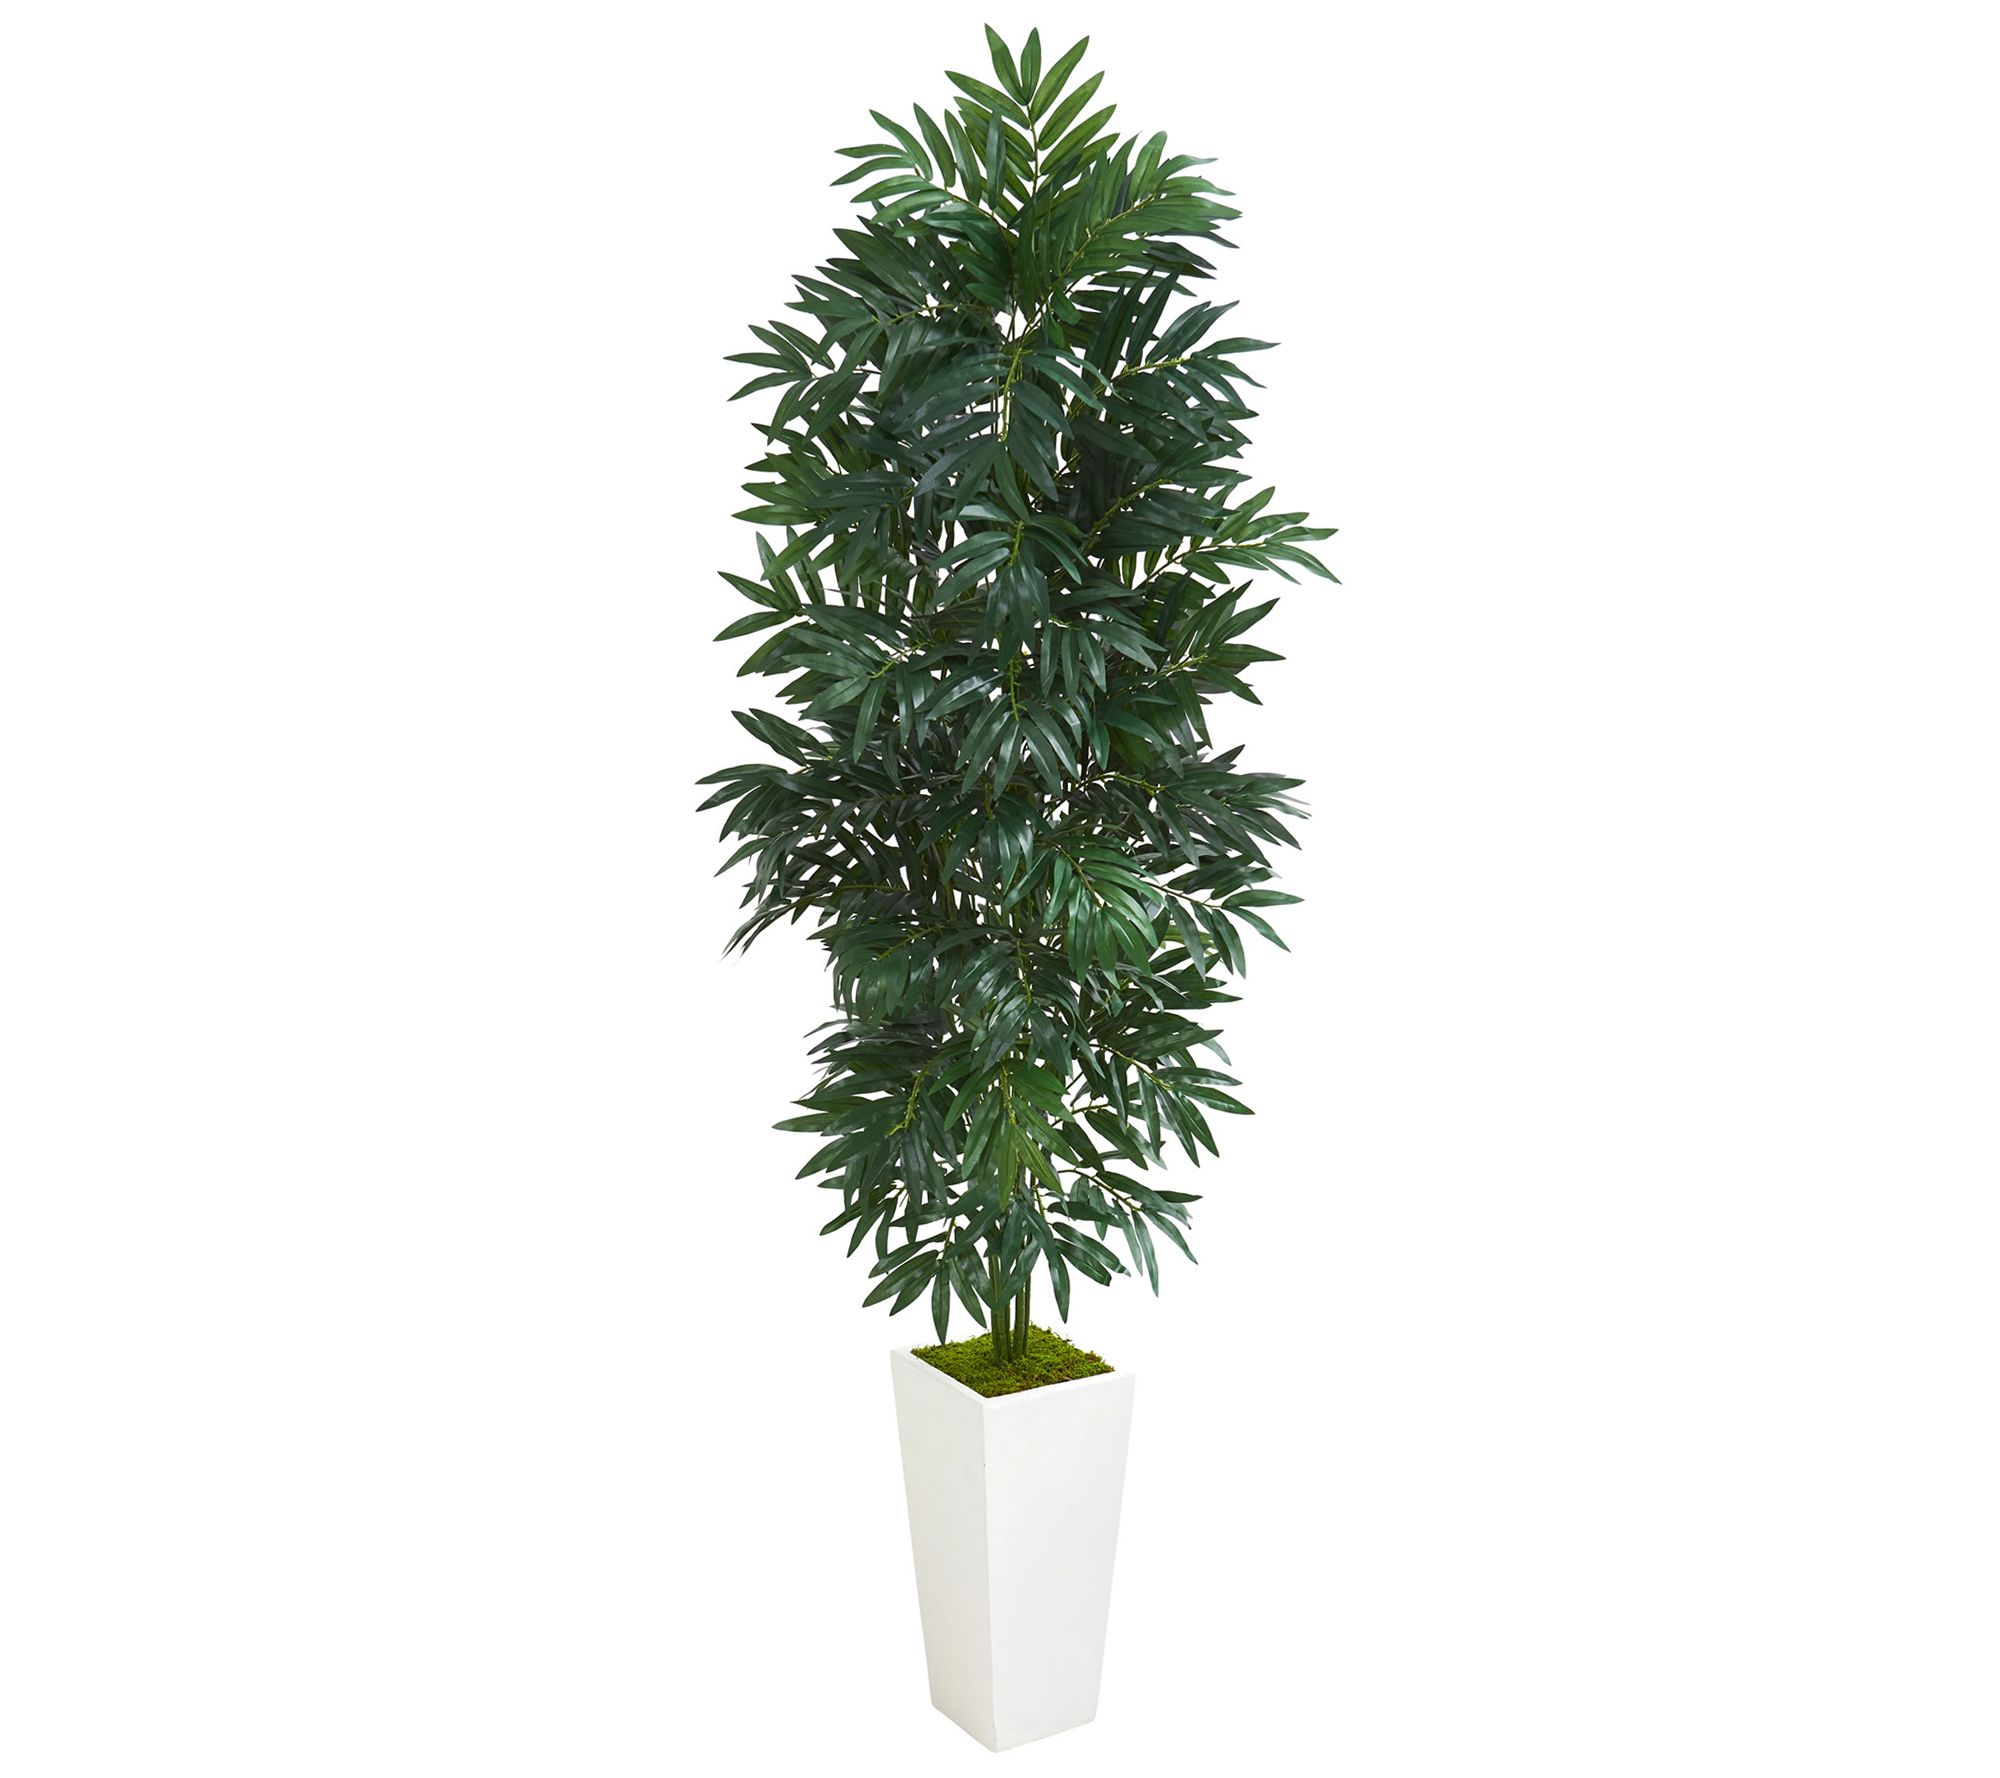 5 Bamboo Palm Plant In Planter By Nearly Natural Qvc Com